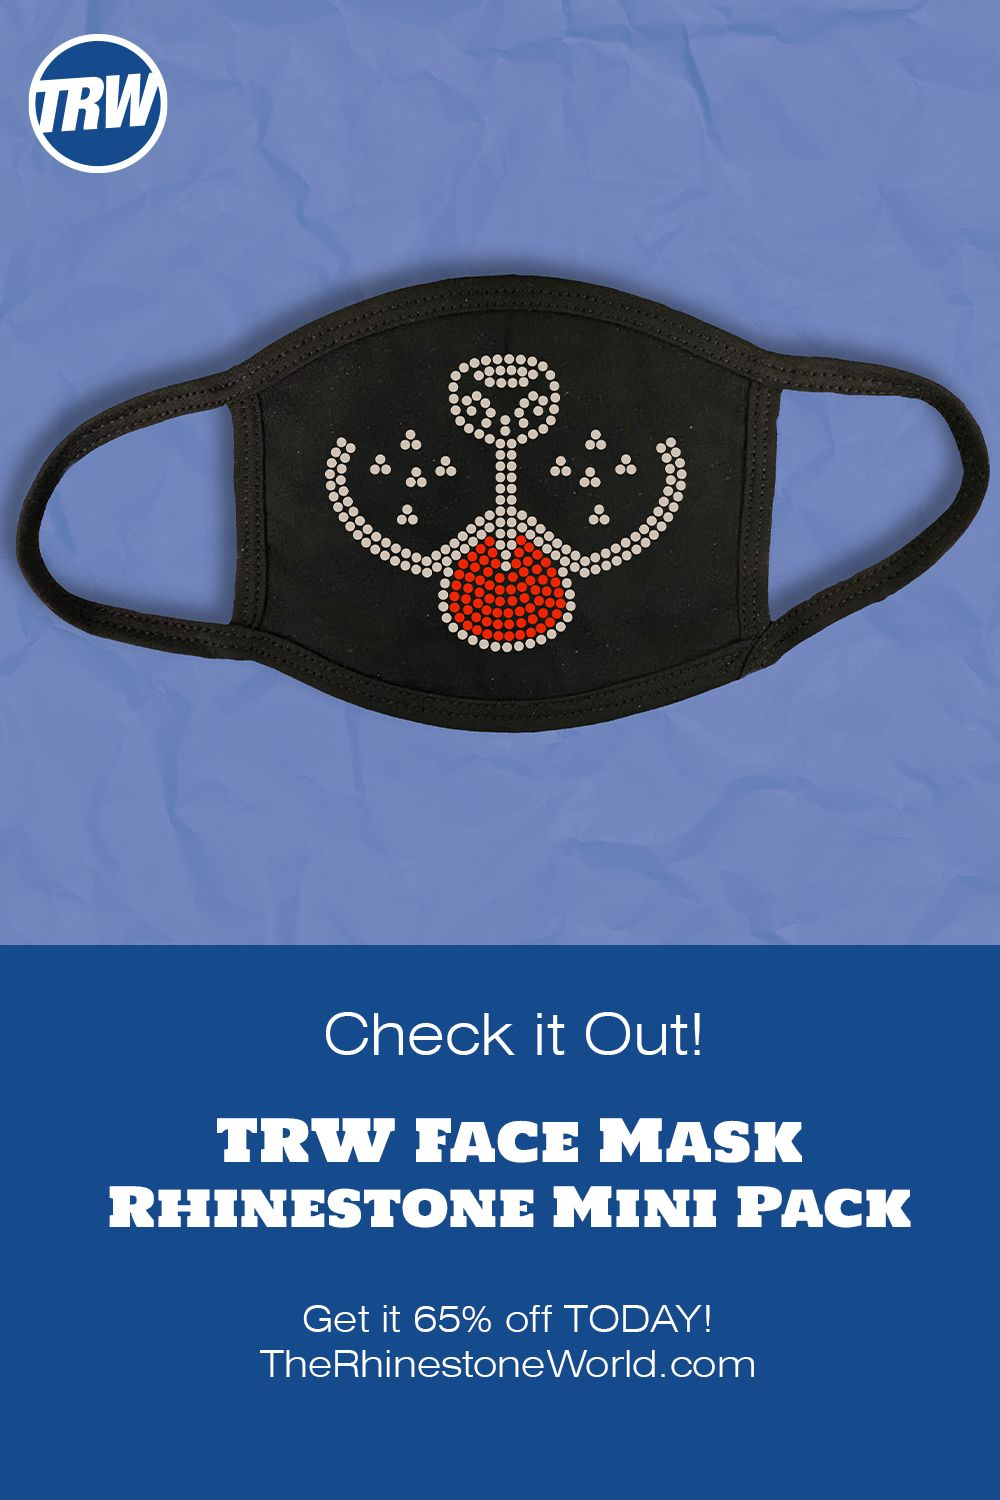 TRW Face Mask Rhinestone Mini Pack 1 VAPK